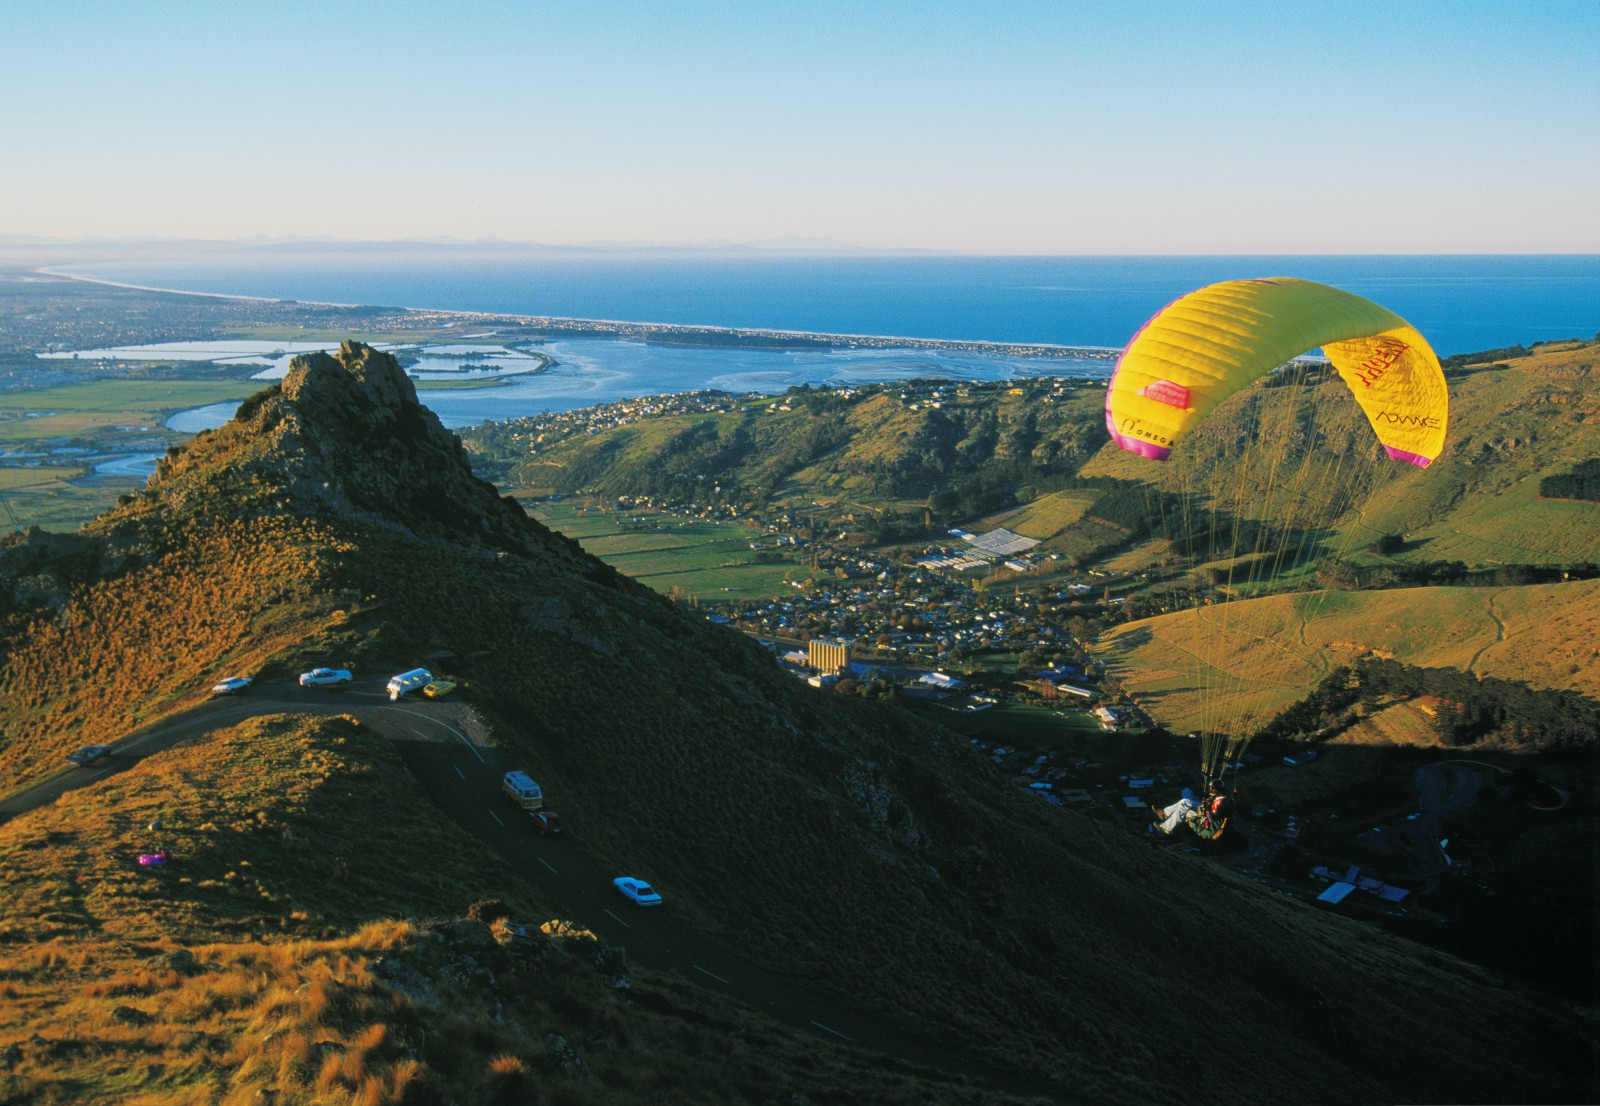 Borne aloft by updrafts close to Castle Rock, one of many crags in the Port Hills popular with climbers, a paraglider savours evening tranquillity and sweeping views towards the estuary of the Avon and Heathcote Rivers, near the Christchurch suburb of Mount Pleasant. The Summit Road—the backbone of a network of roads, biking tracks and walking trails linking a patchwork of bush reserves—is a boon to all who enjoy the outdoors. It provides easy access from both sides of the Port Hills to places of interest and adventure, catering for the geologist, historian and naturalist as well as trampers, cyclists and adrenalin junkies.